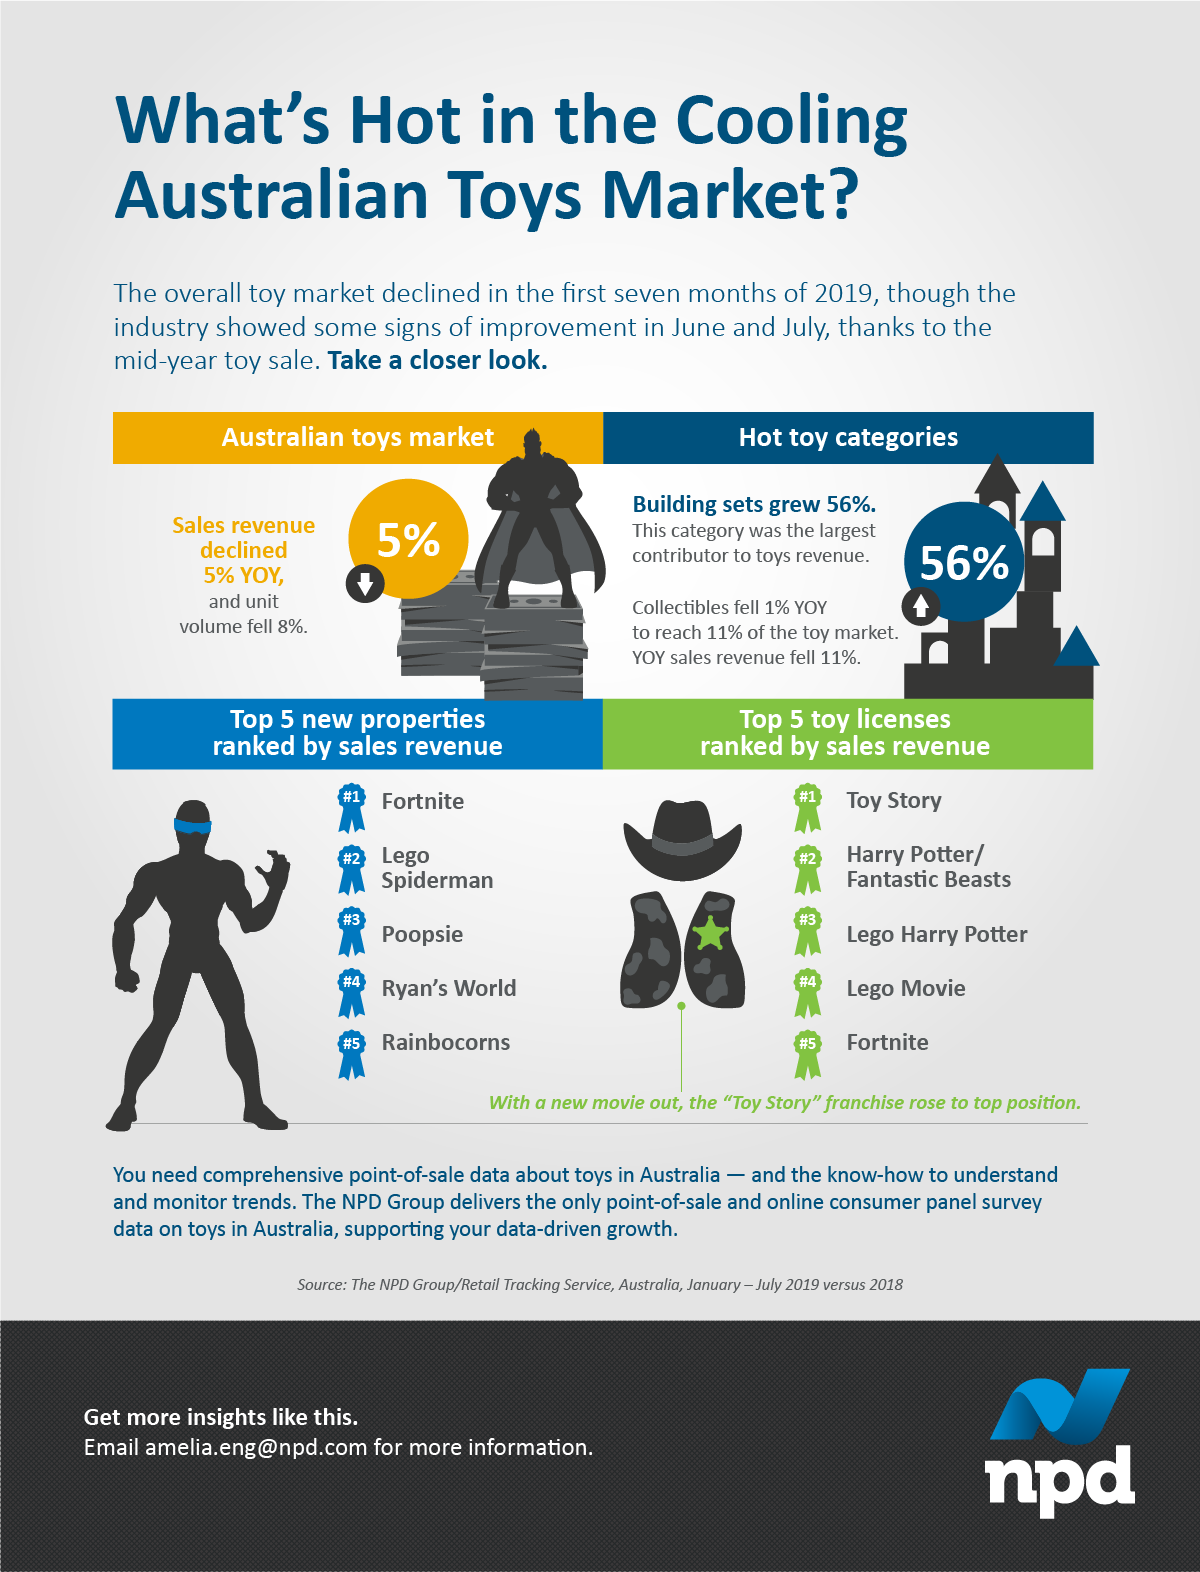 Australia's overall toy market declined in the first seven months of 2019, though the industry showed some signs of improvement in June and July, thanks to the mid-year toy sale. Want a closer look?